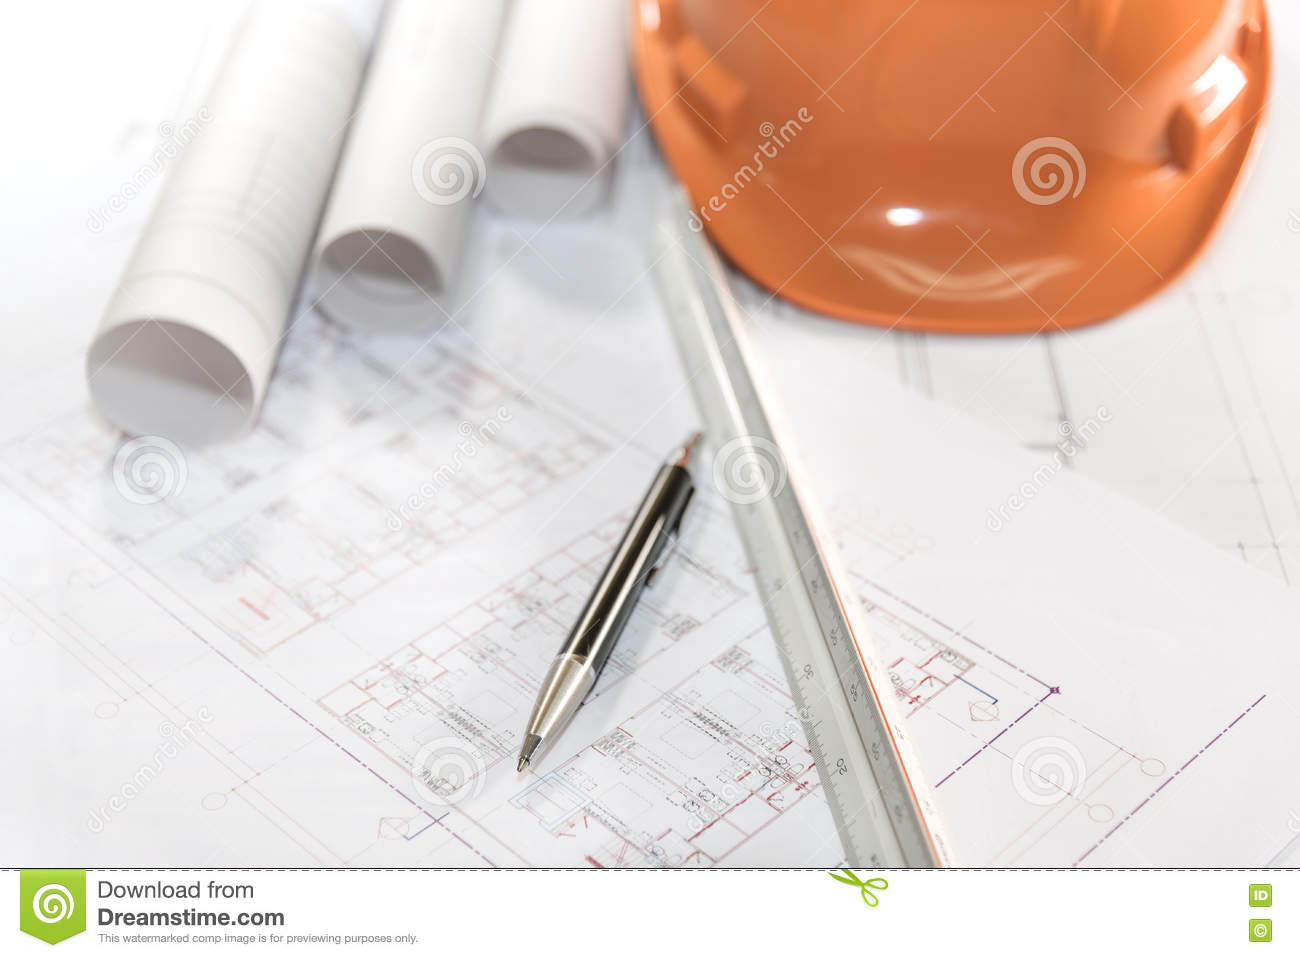 Architect plans project drawing and pen with blueprints rolls